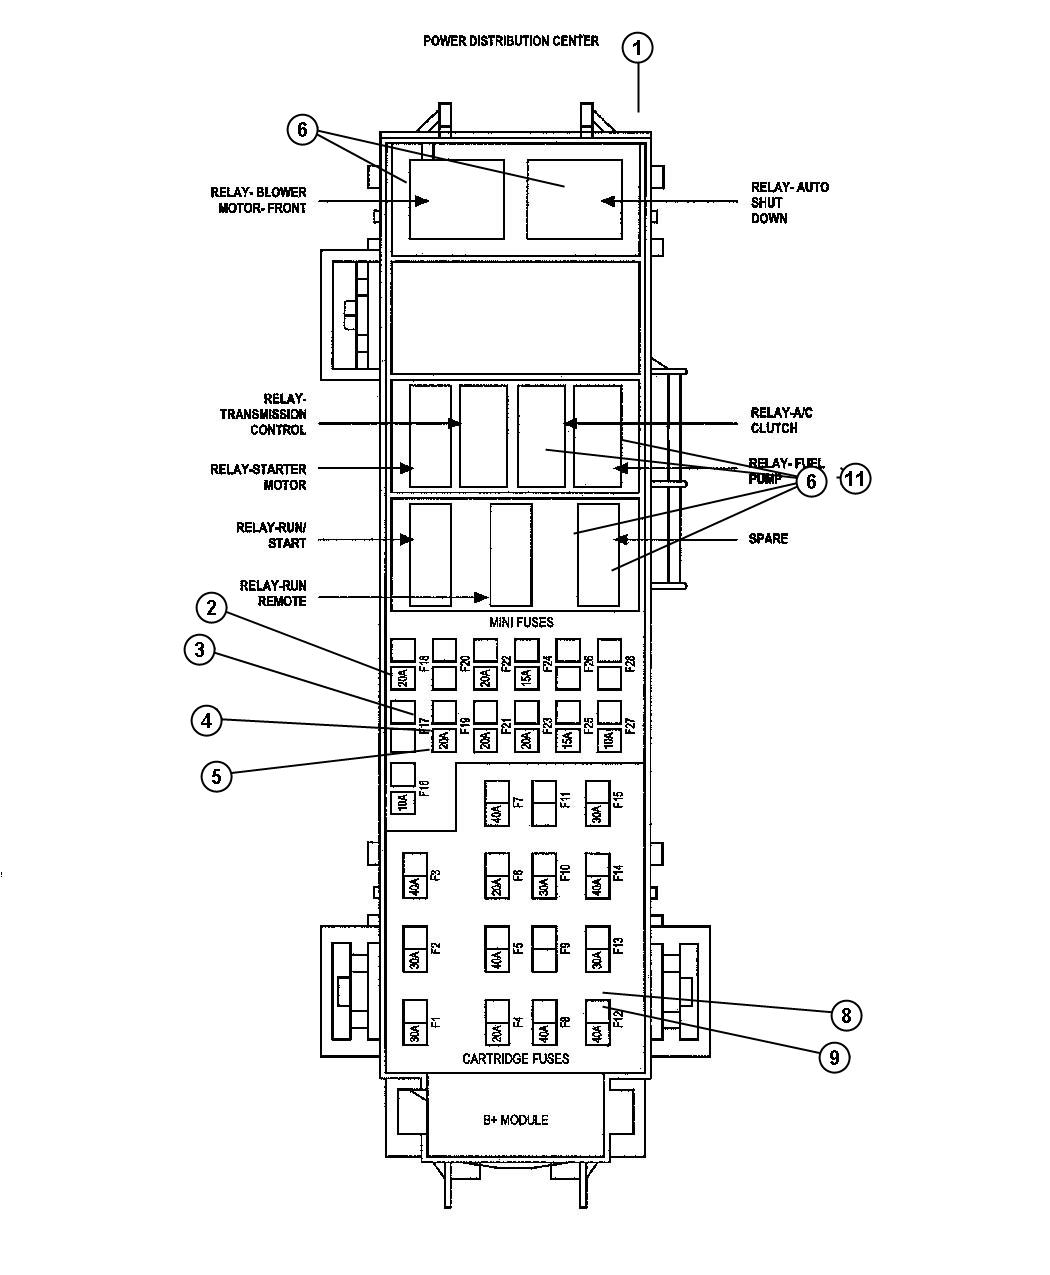 chevrolet kodiak fuse box location